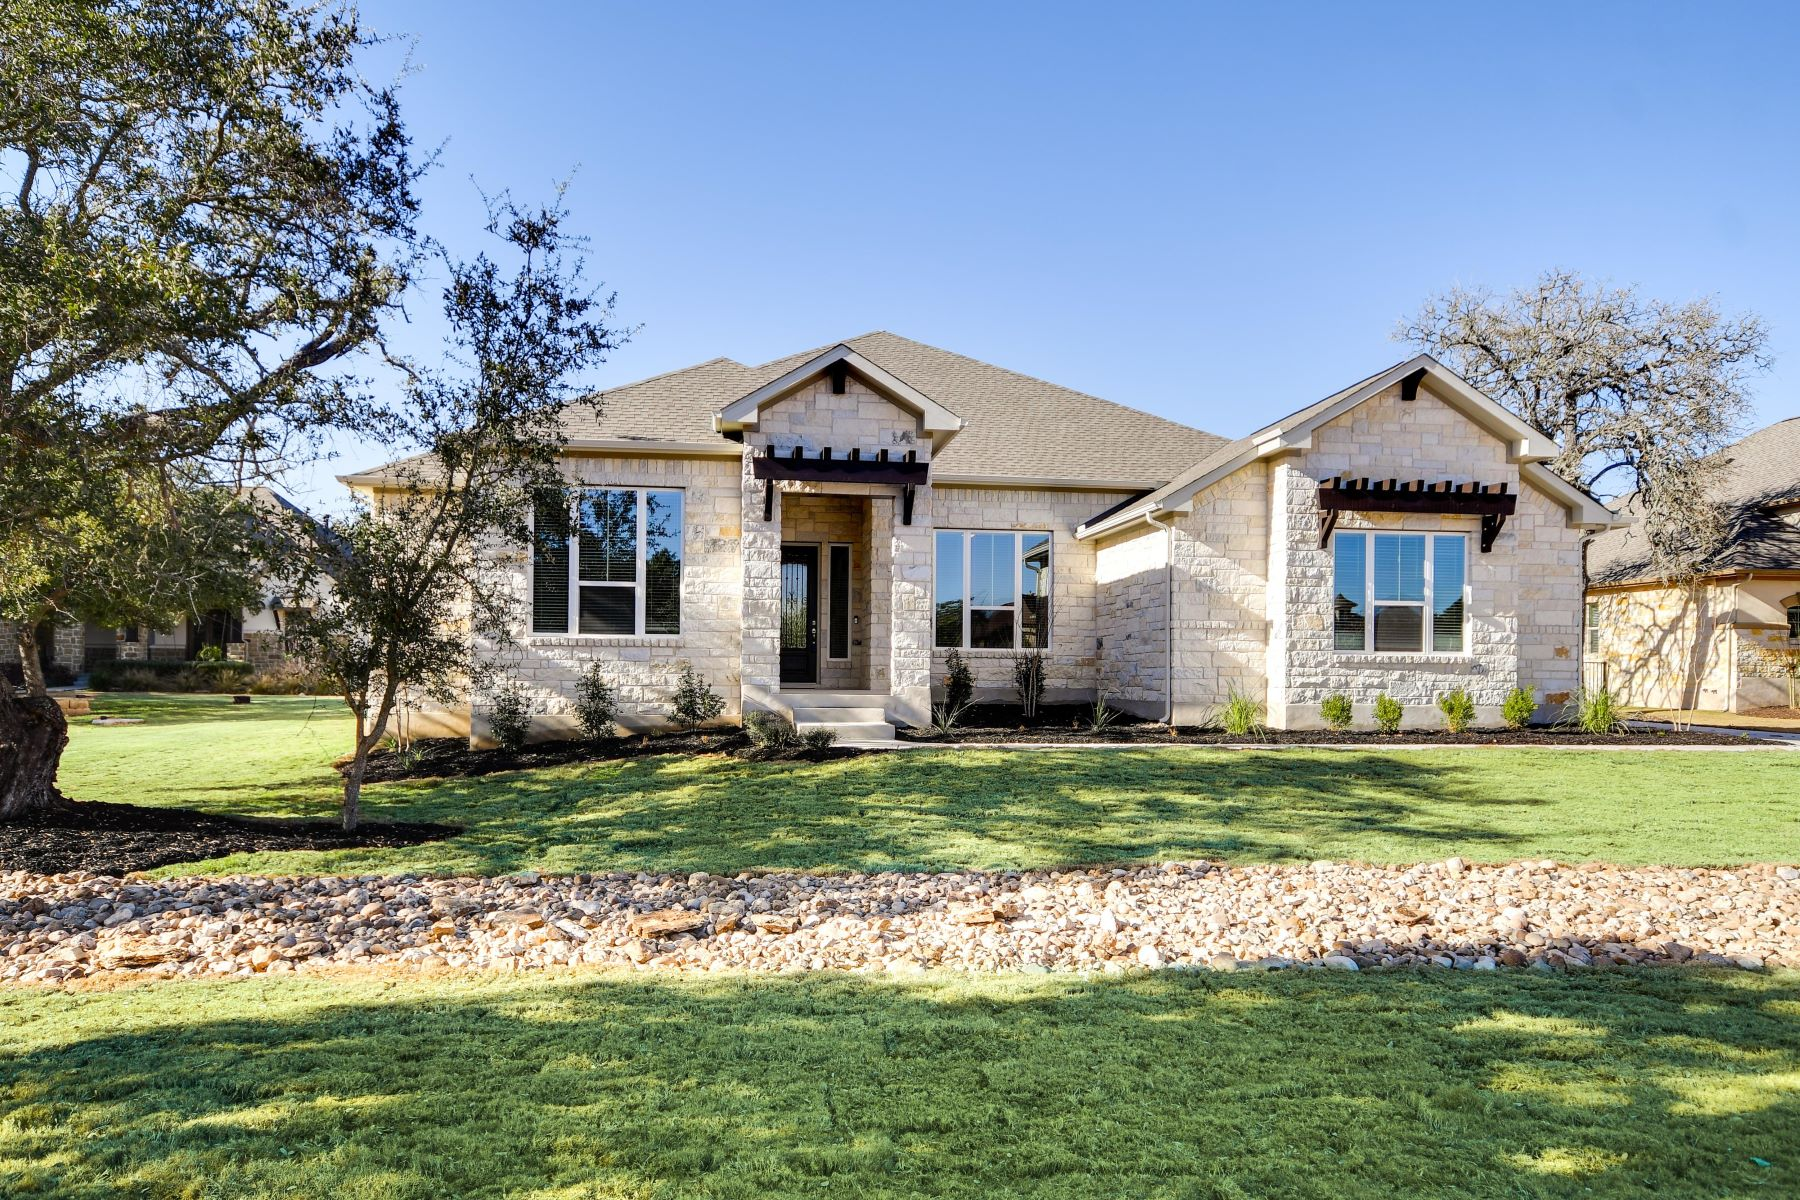 Single Family Homes for Active at 530 Hawthorne Loop, Driftwood, TX 78619 530 Hawthorne Loop Driftwood, Texas 78619 United States